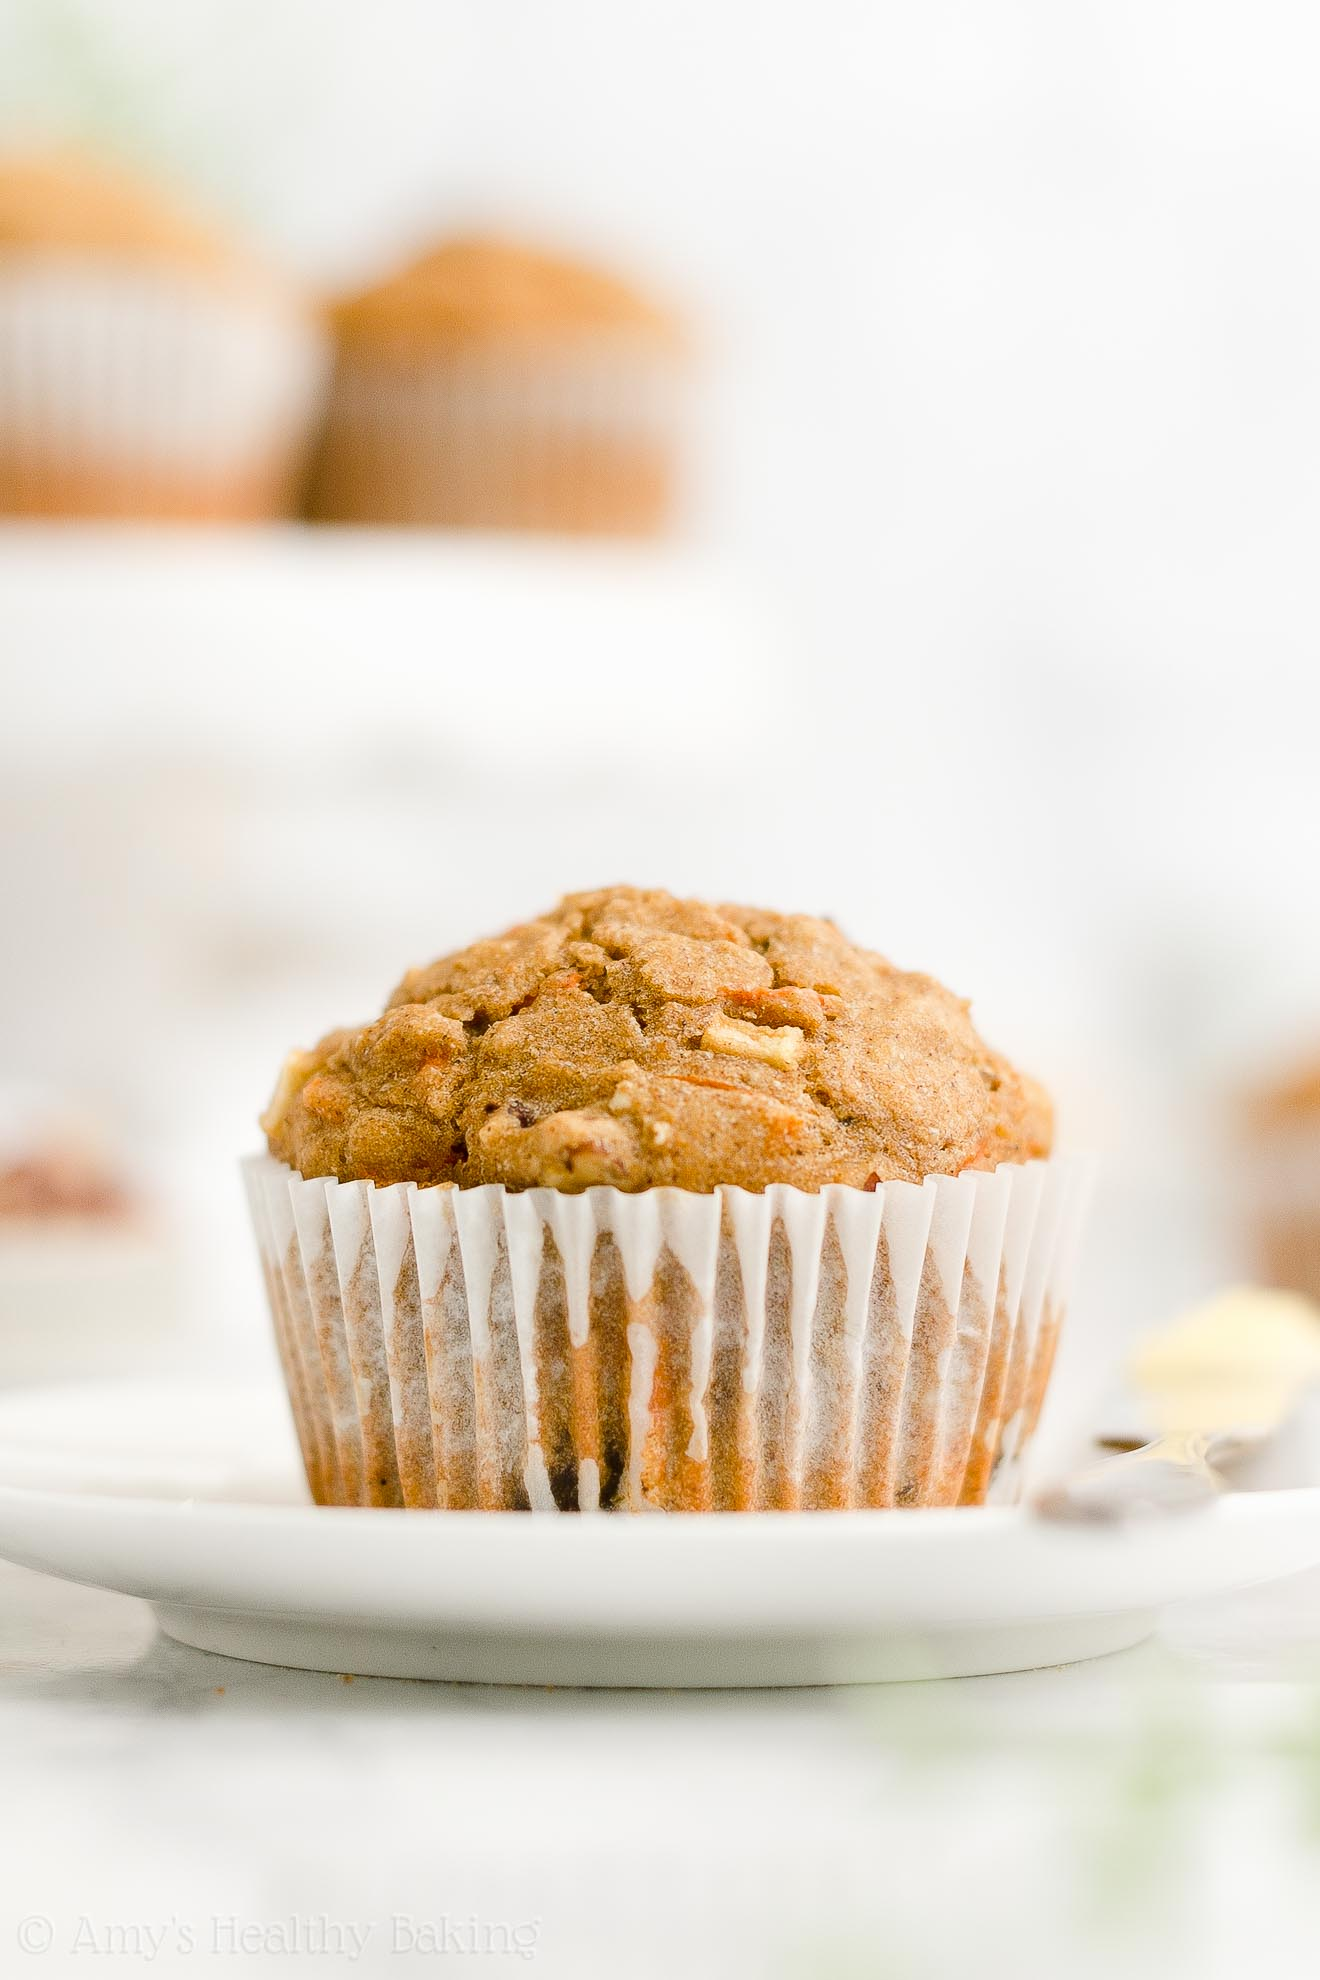 Best Easy Healthy Gluten Free Low Sugar Moist Morning Glory Oatmeal Muffins